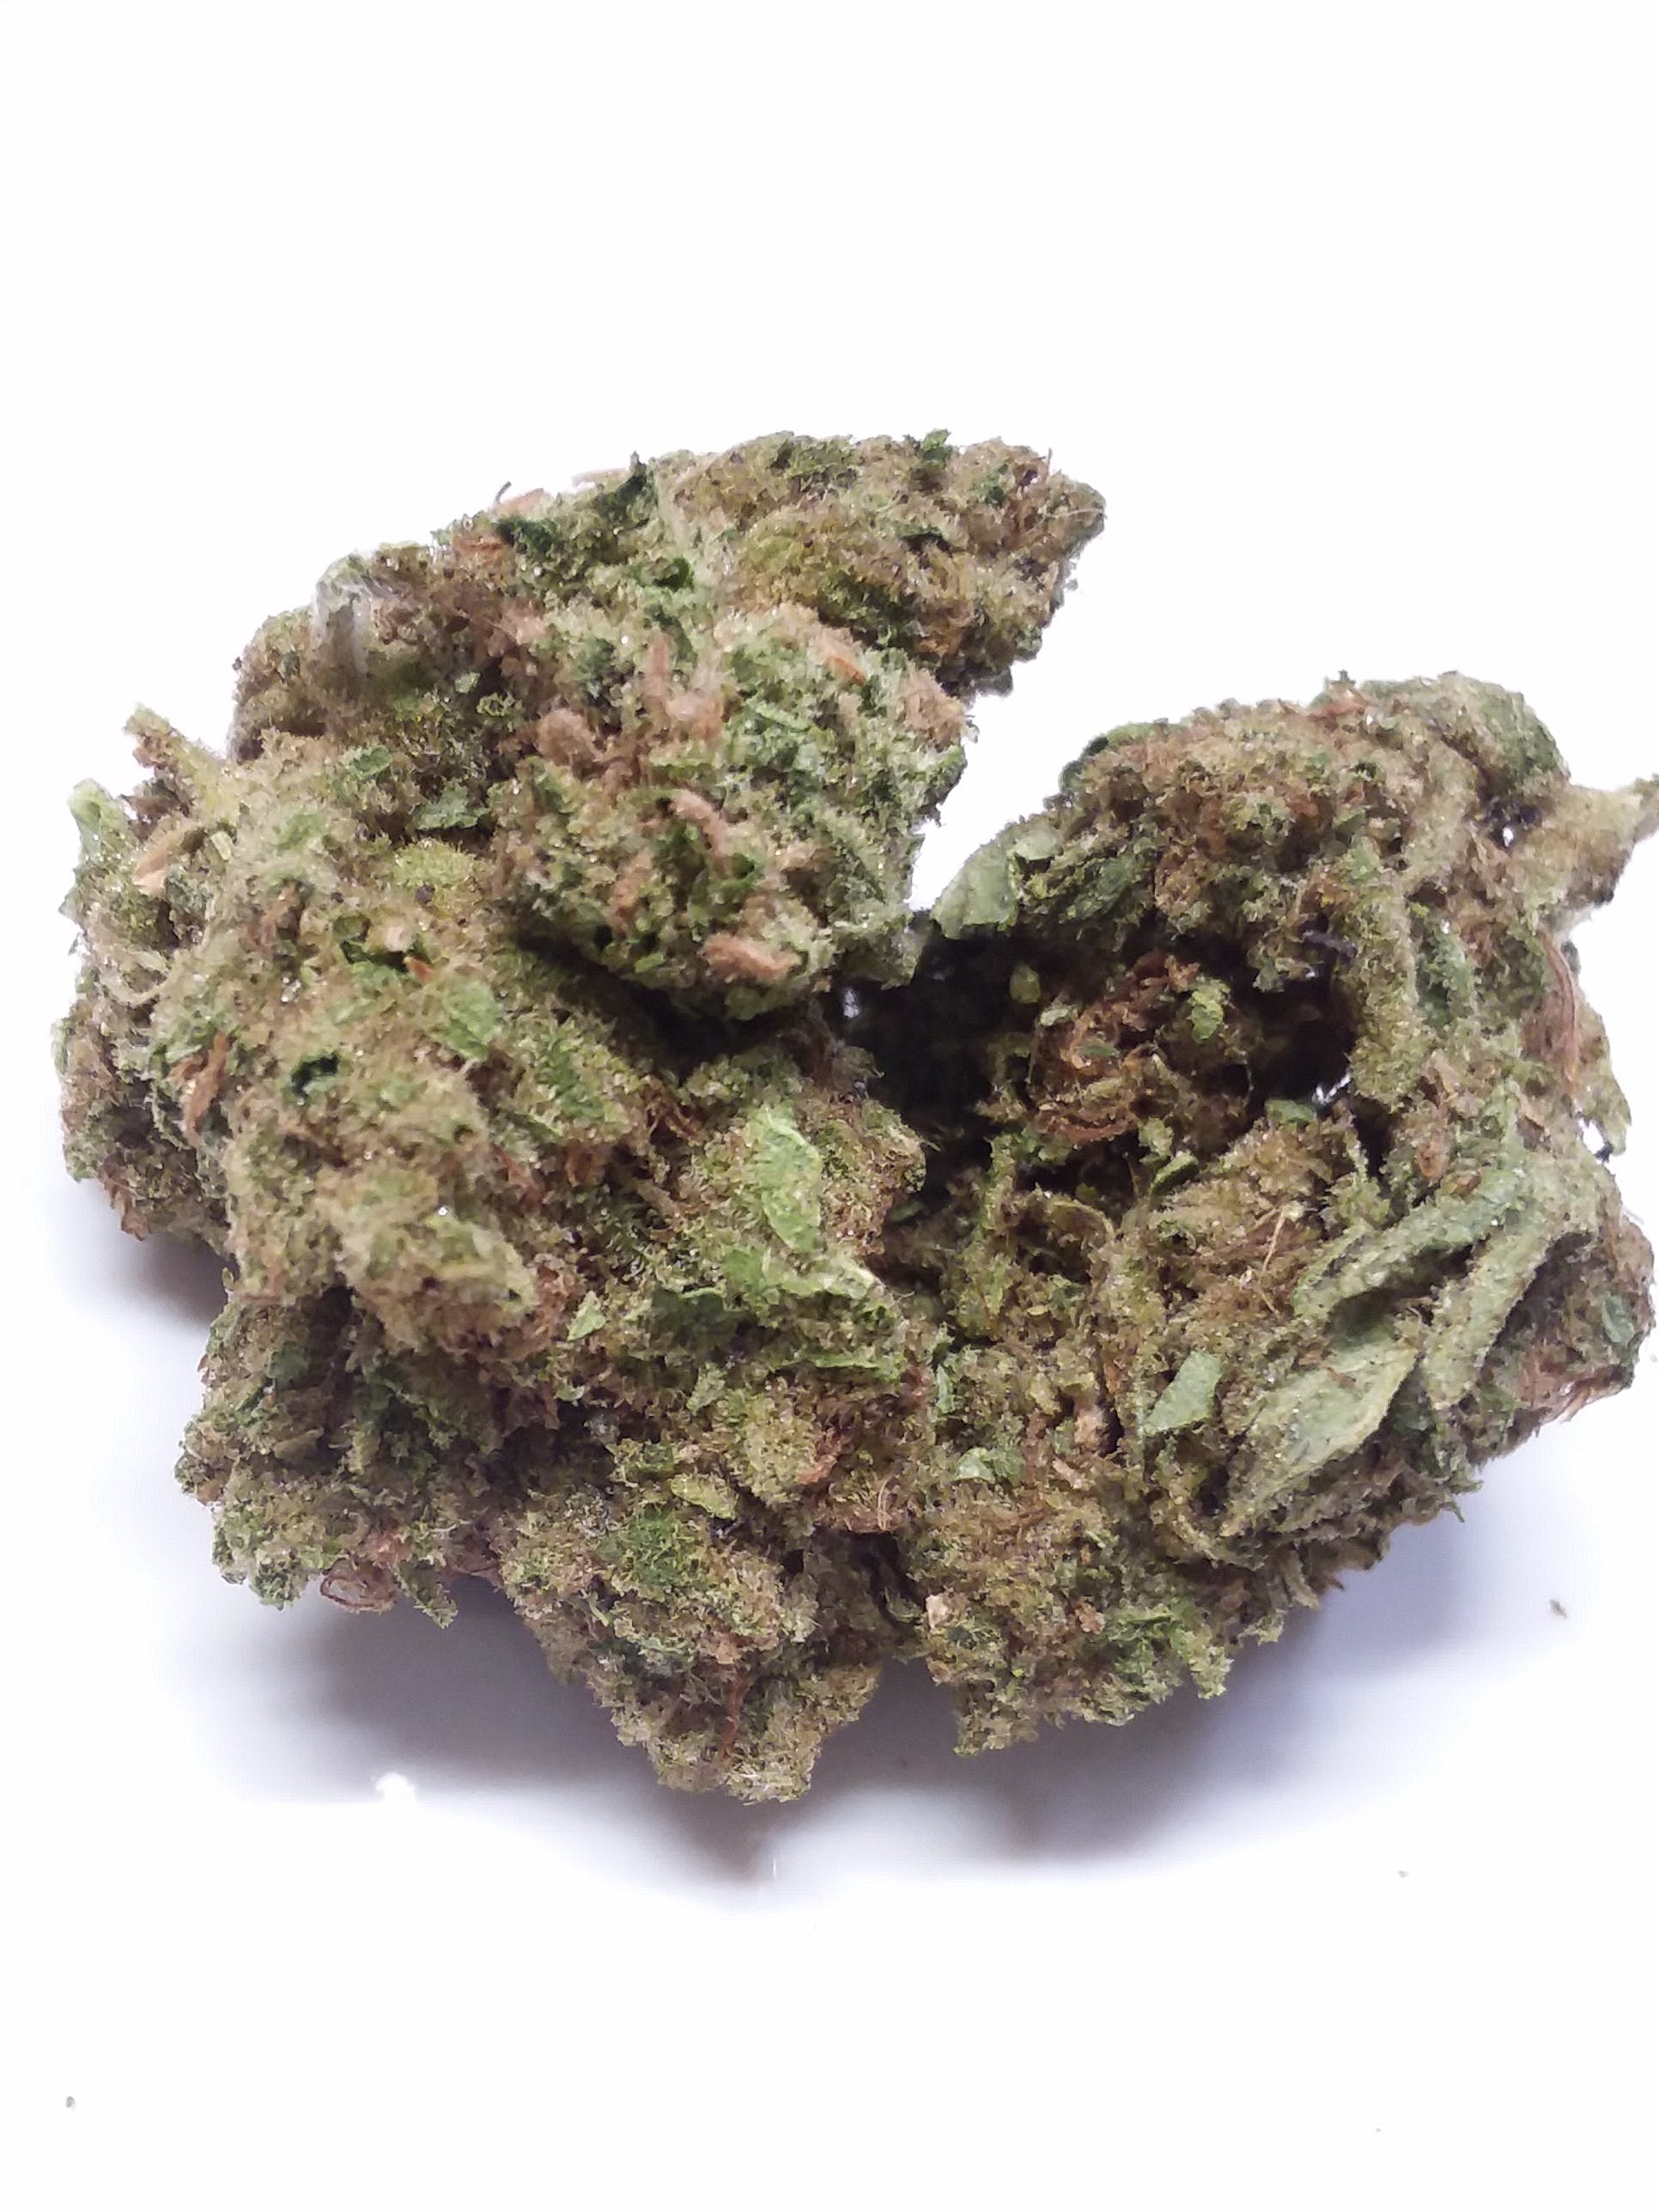 marijuana-dispensaries-thc-35-cap-open-to-2am-in-los-angeles-godfather-og